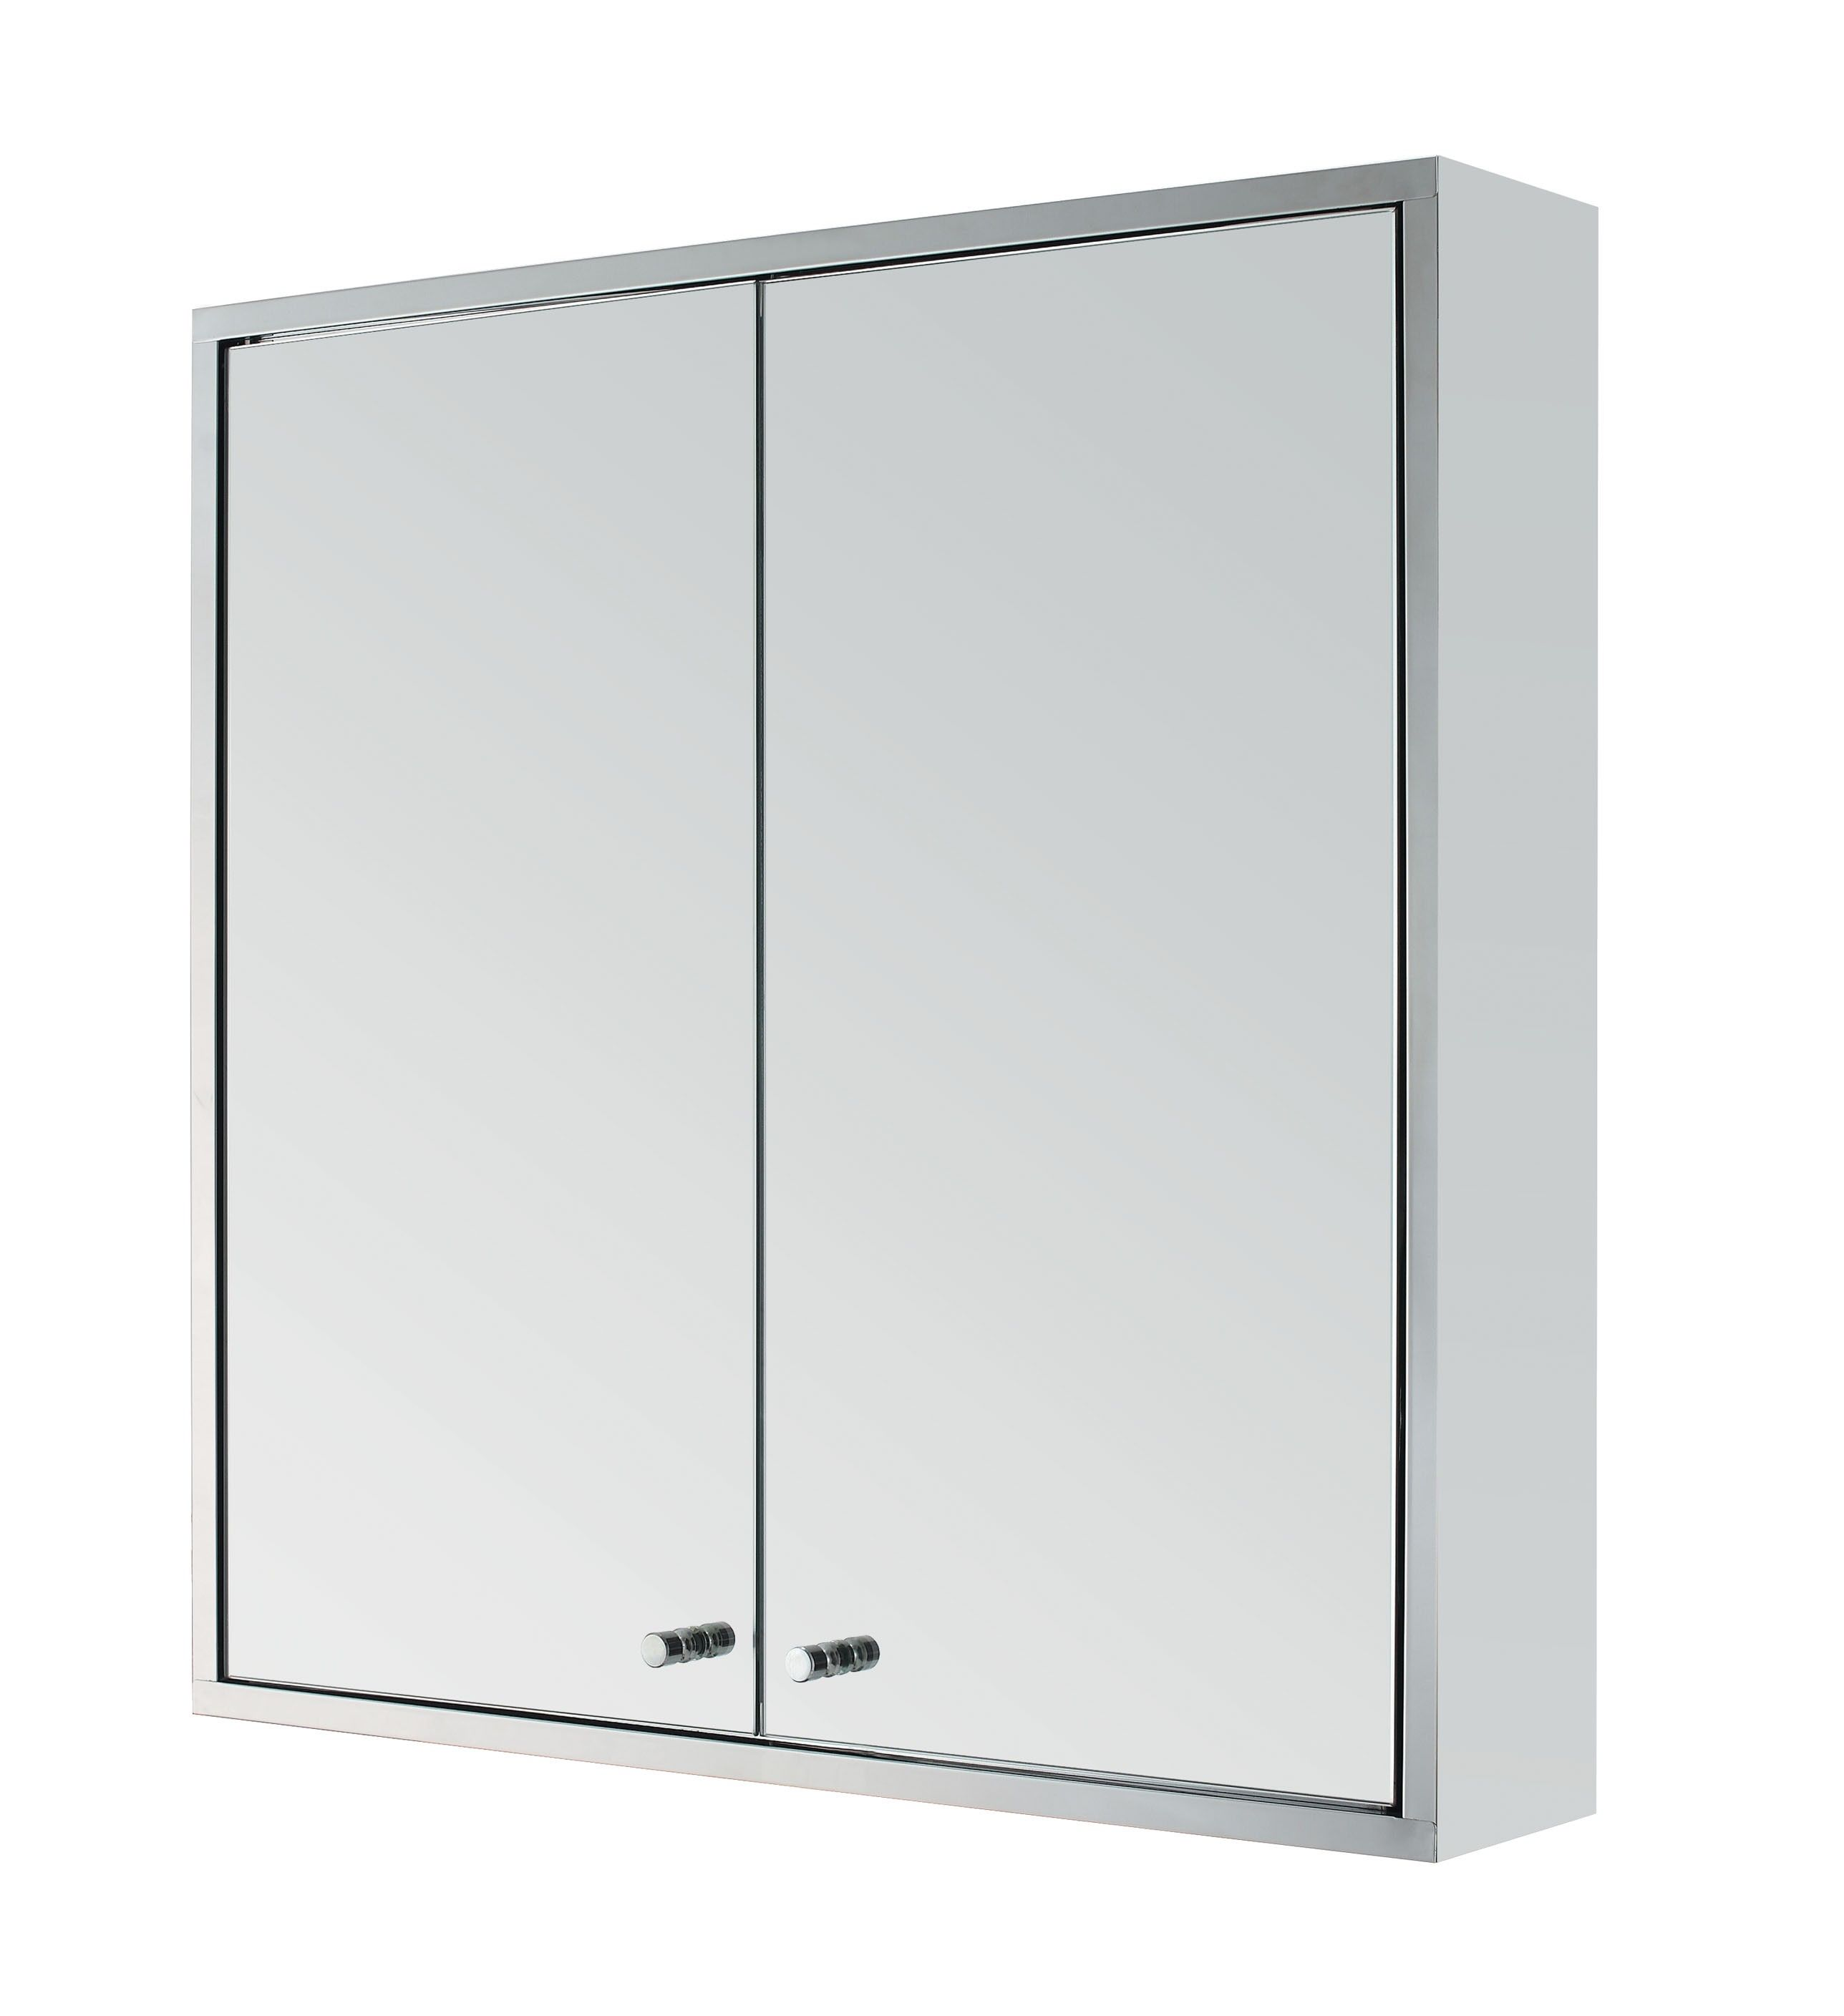 19++ Bathroom wall cabinets stainless steel ideas